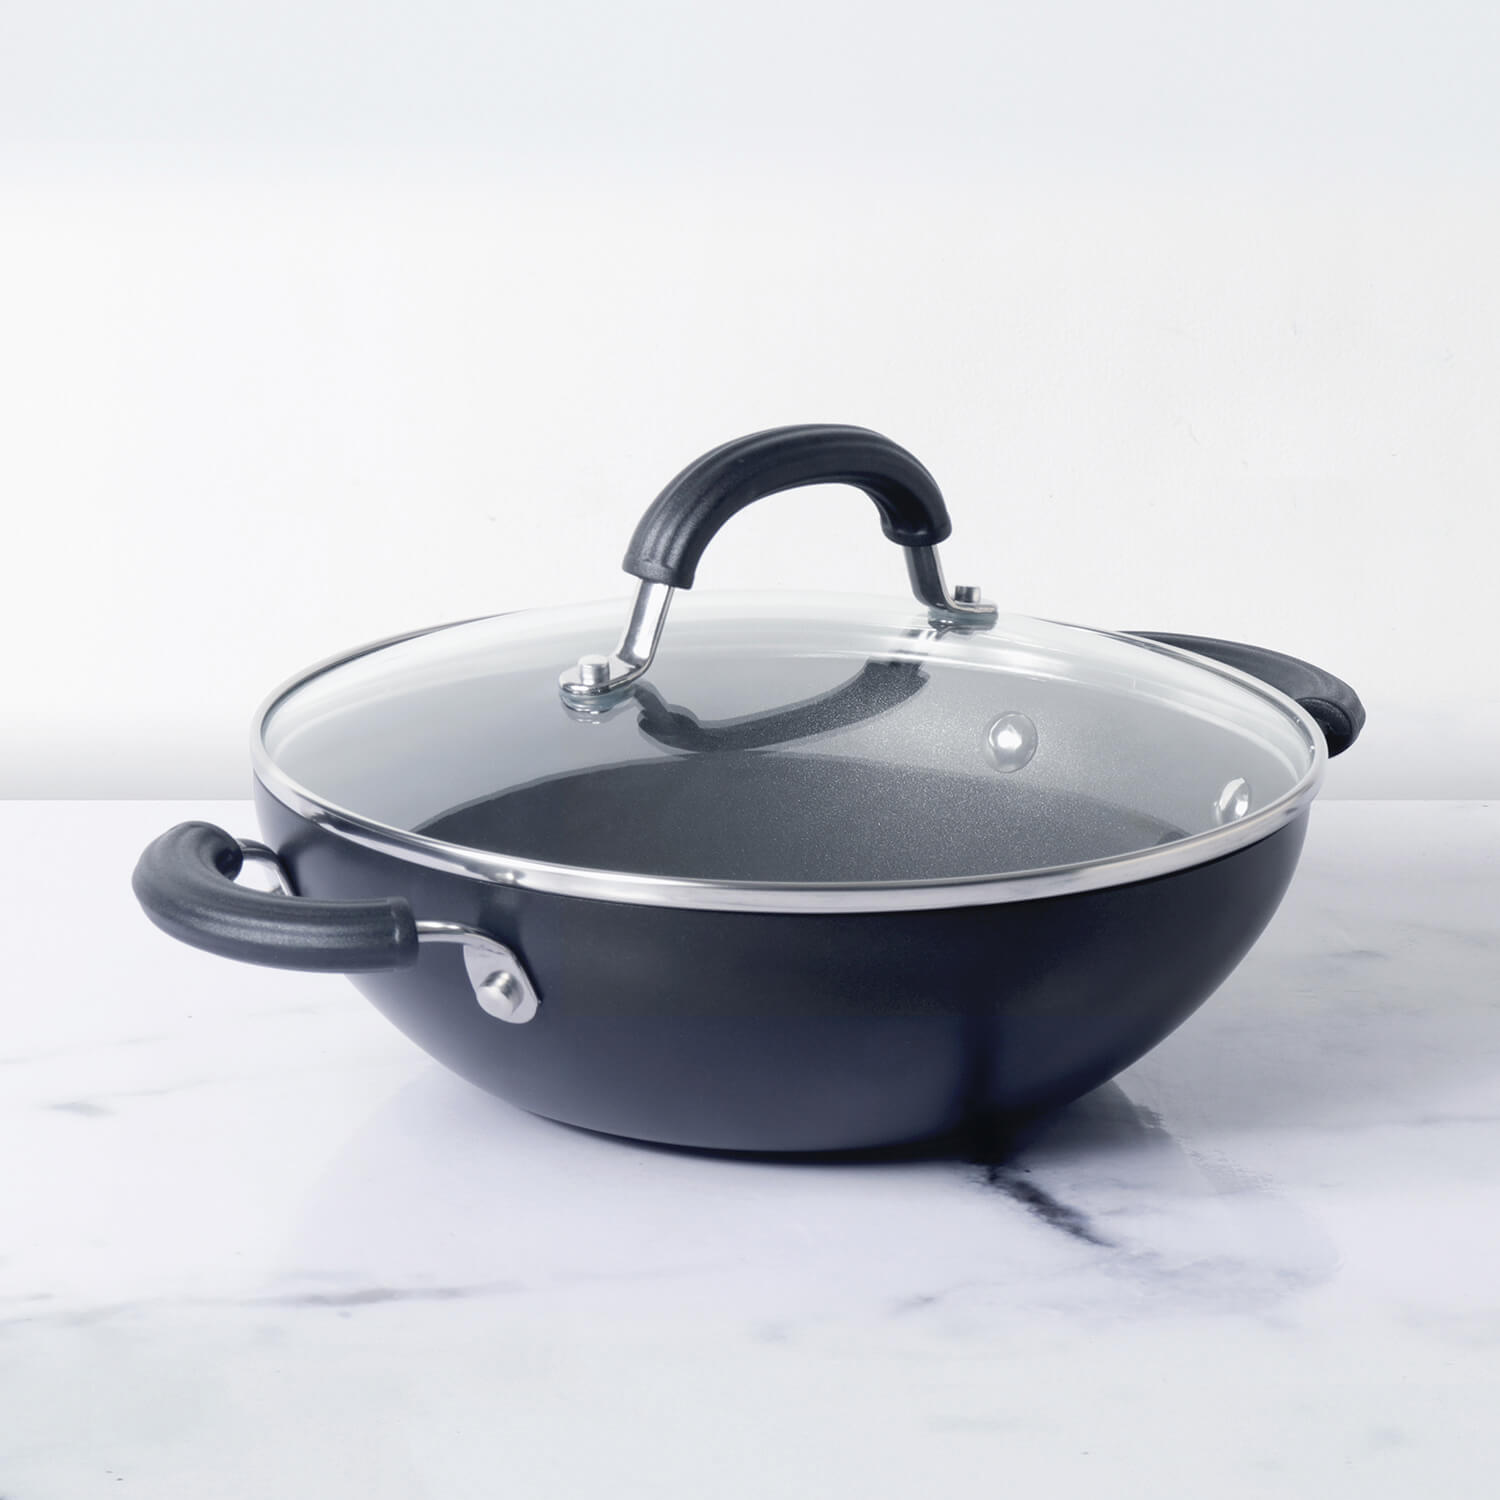 Circulon Origins 26cm Non-Stick + Hard Anodized Kadai/Wok with Lid - Pots and Pans